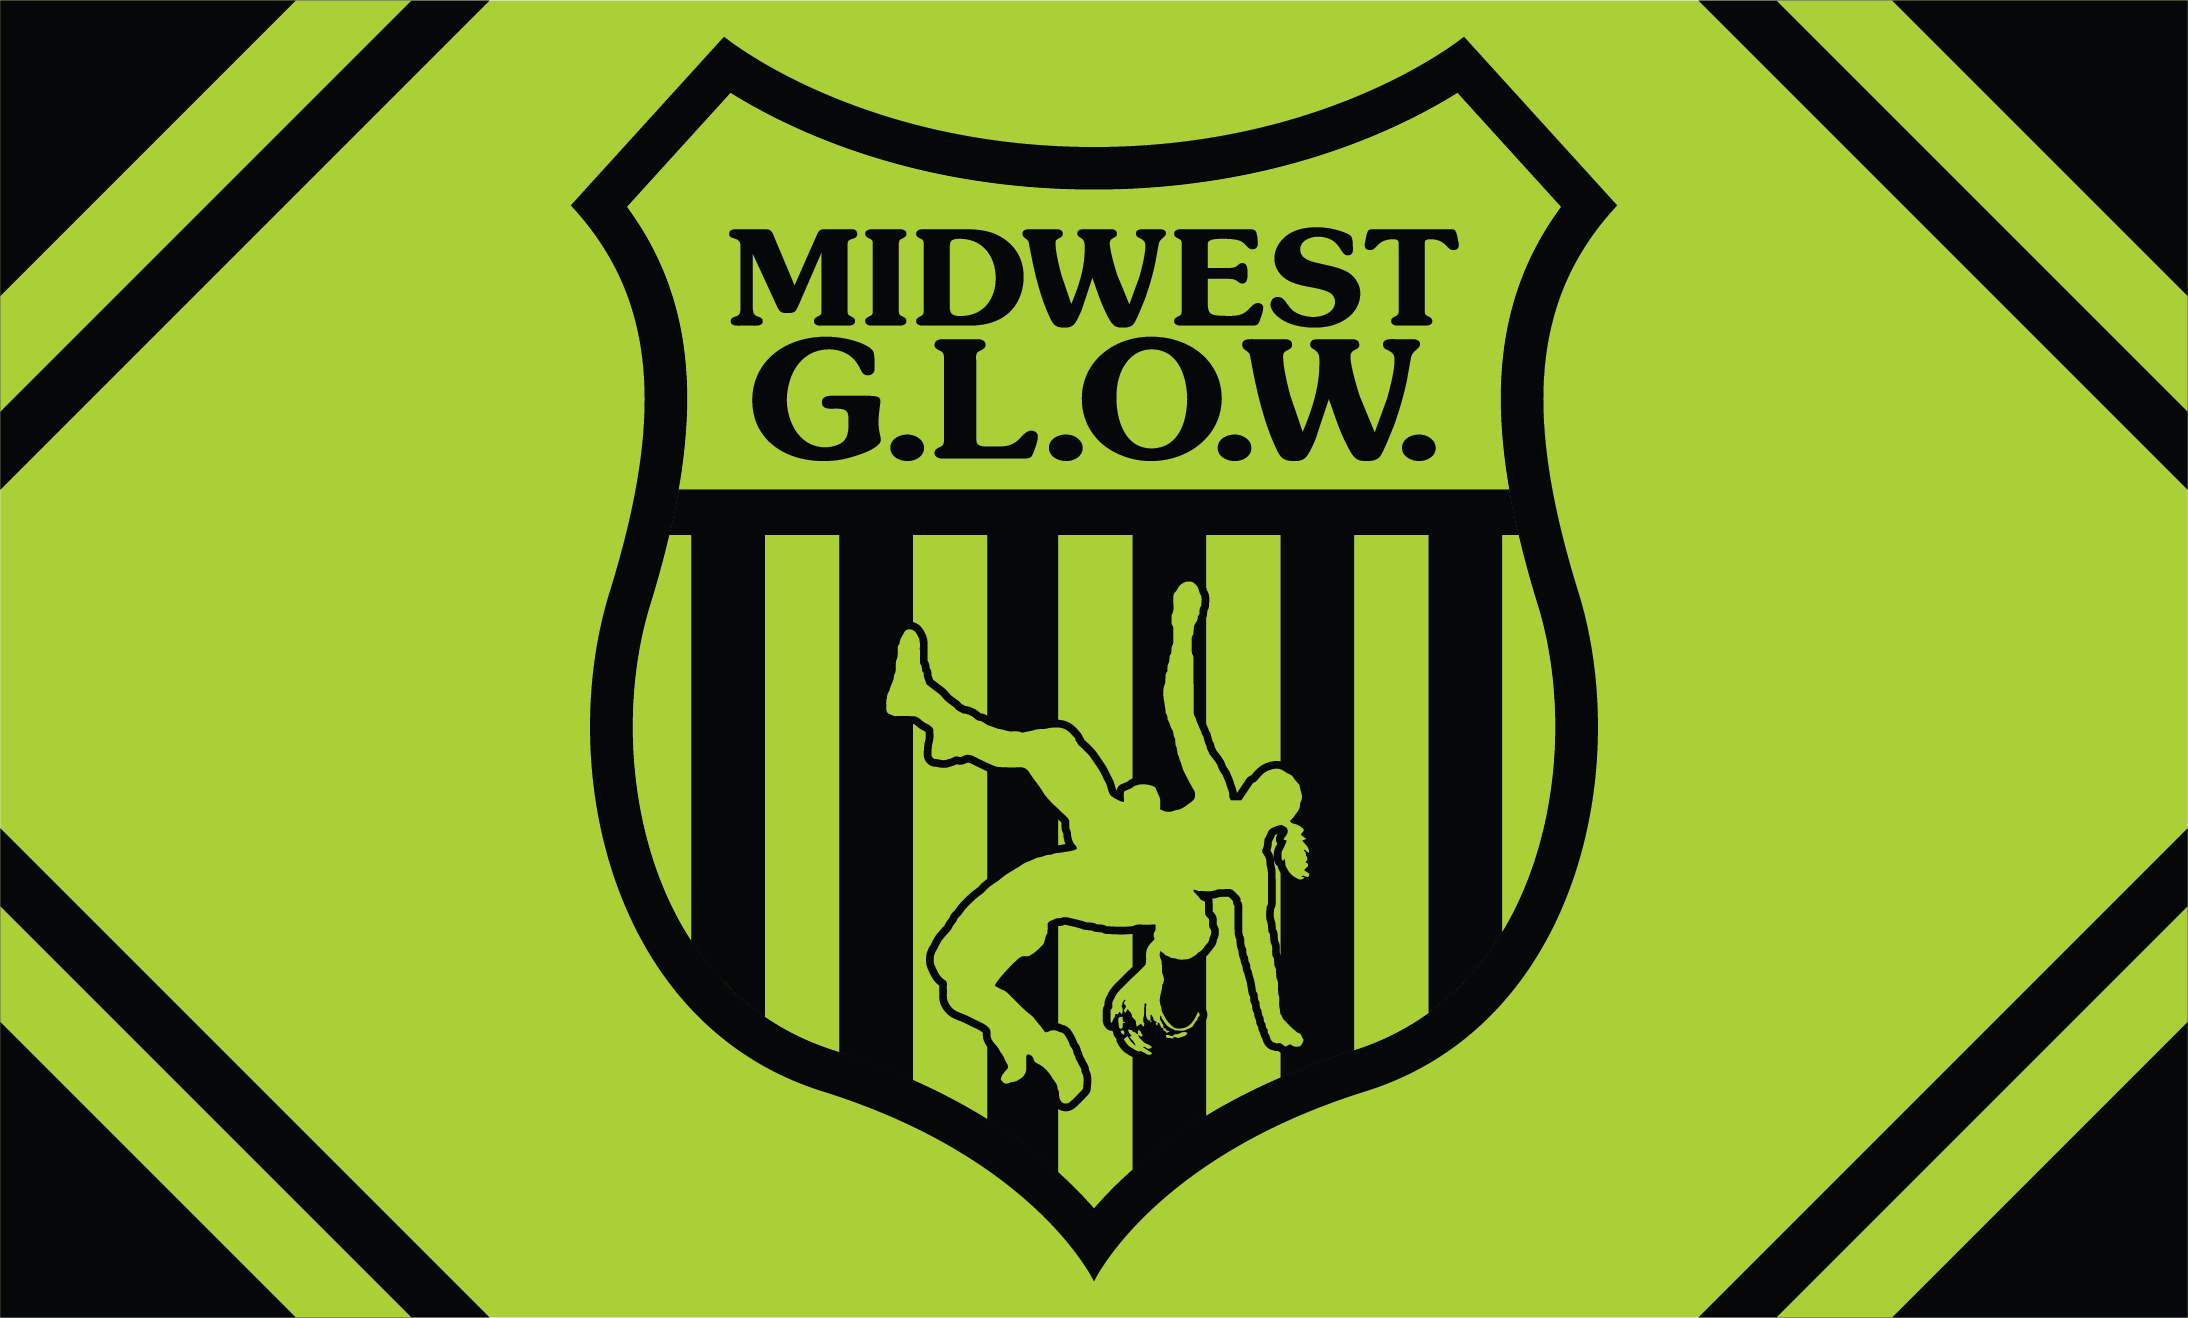 Midwest G.L.O.W.